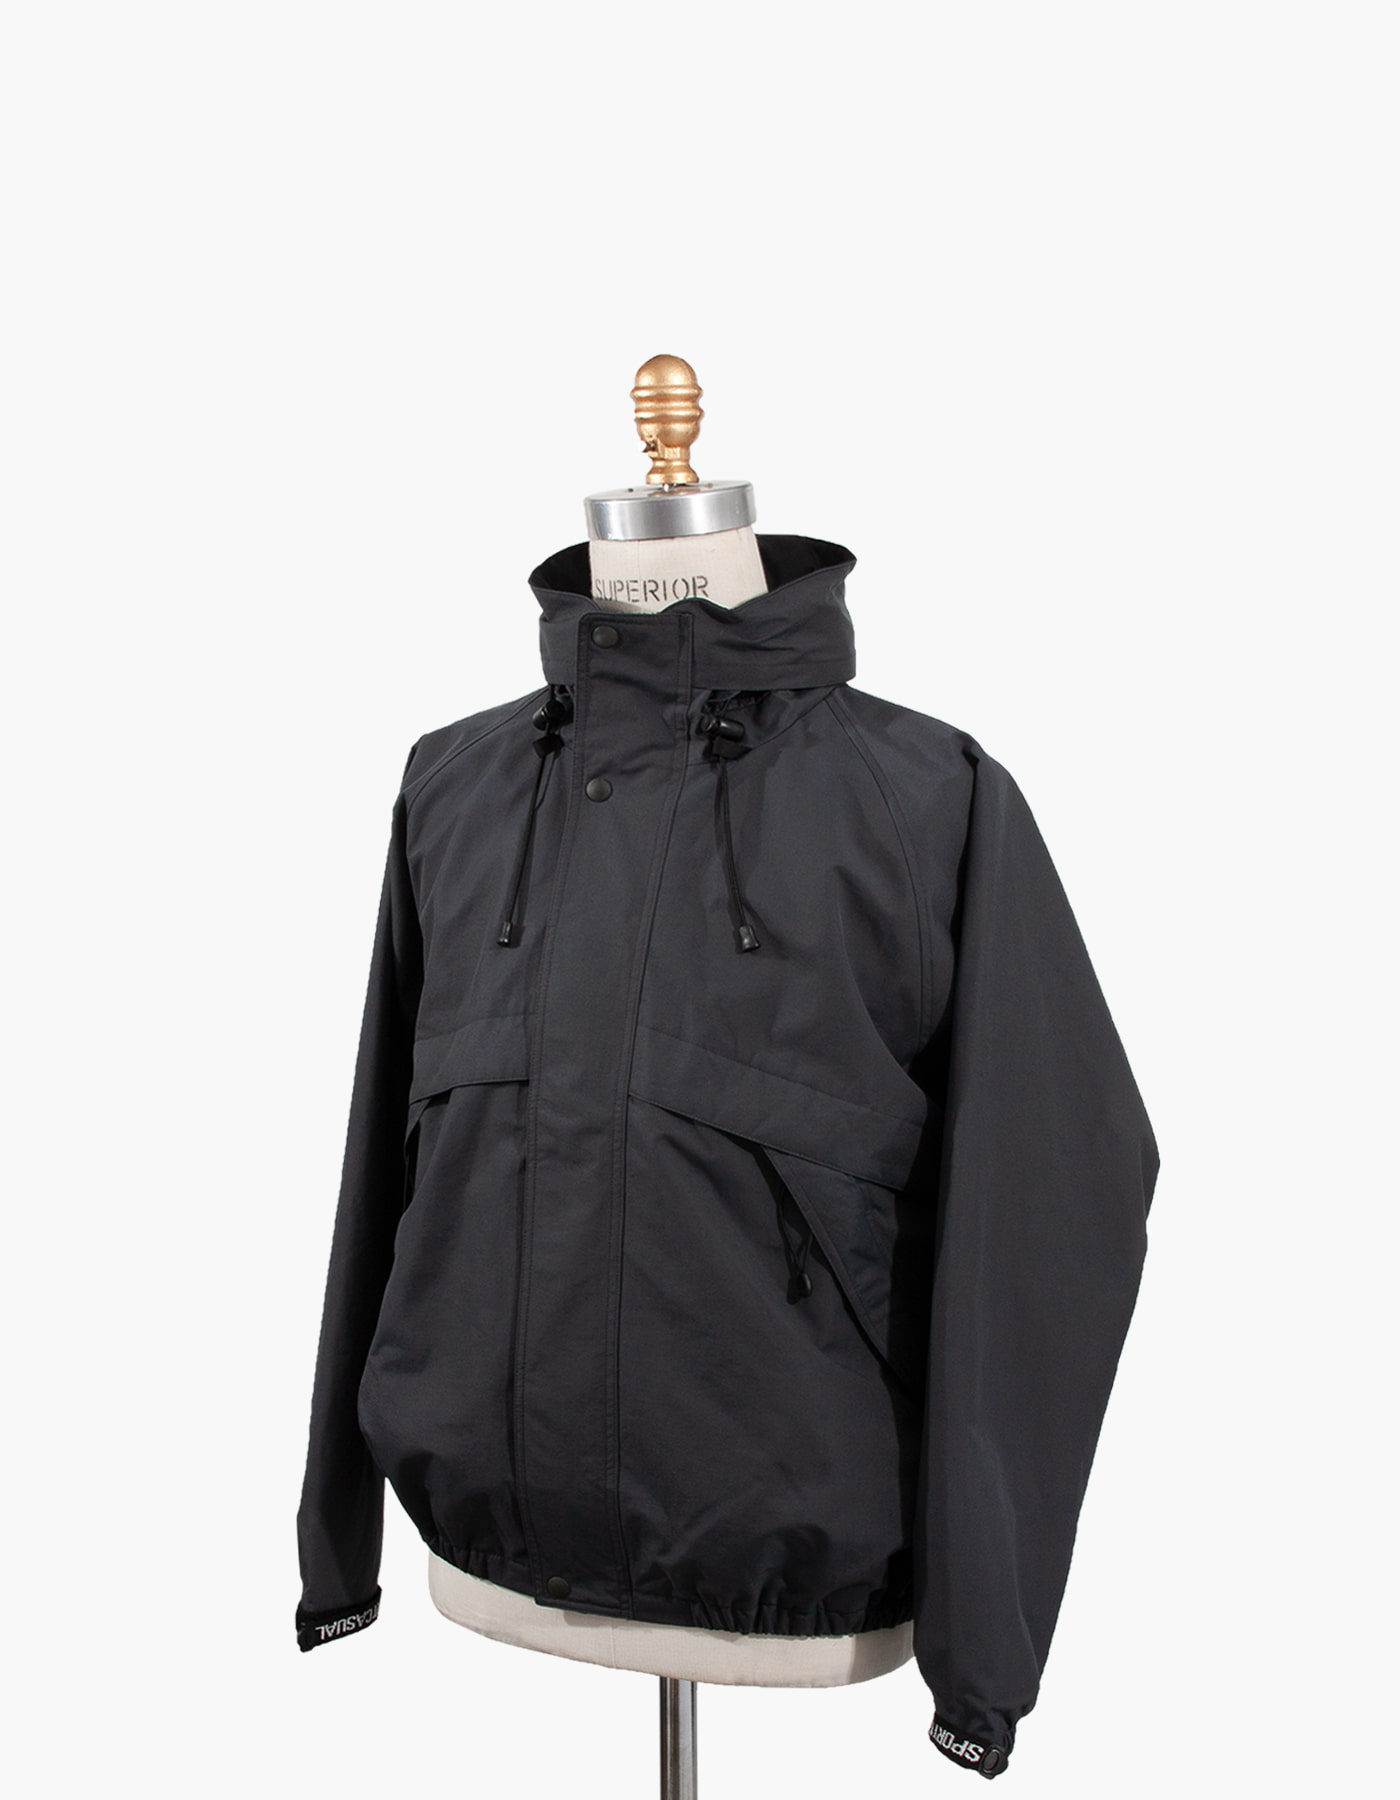 SAILING JACKET / DARK GREY